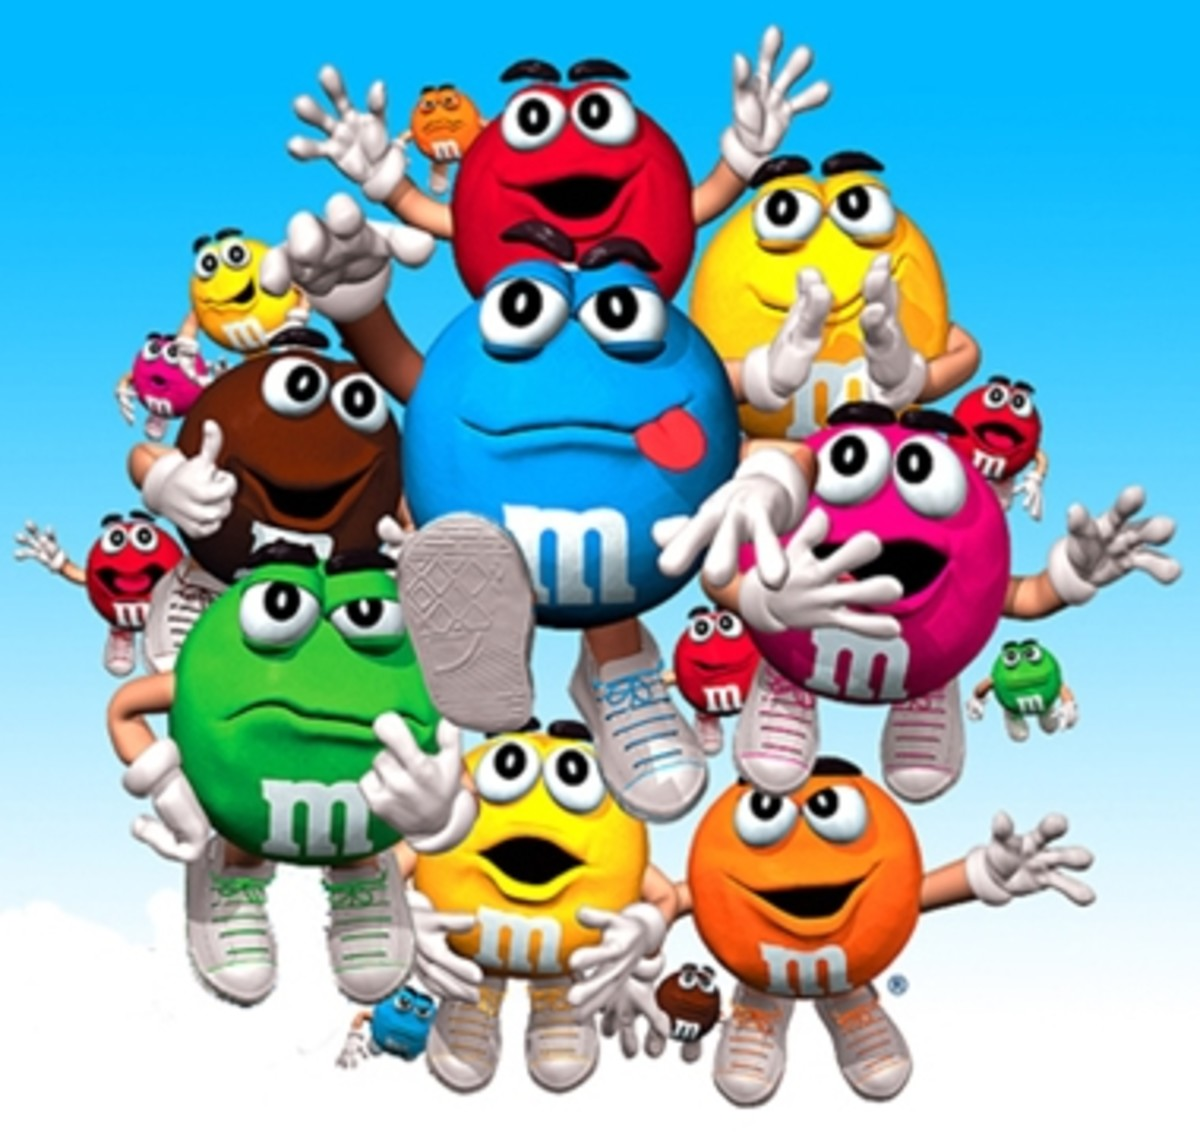 What Is Your Favorite M&M